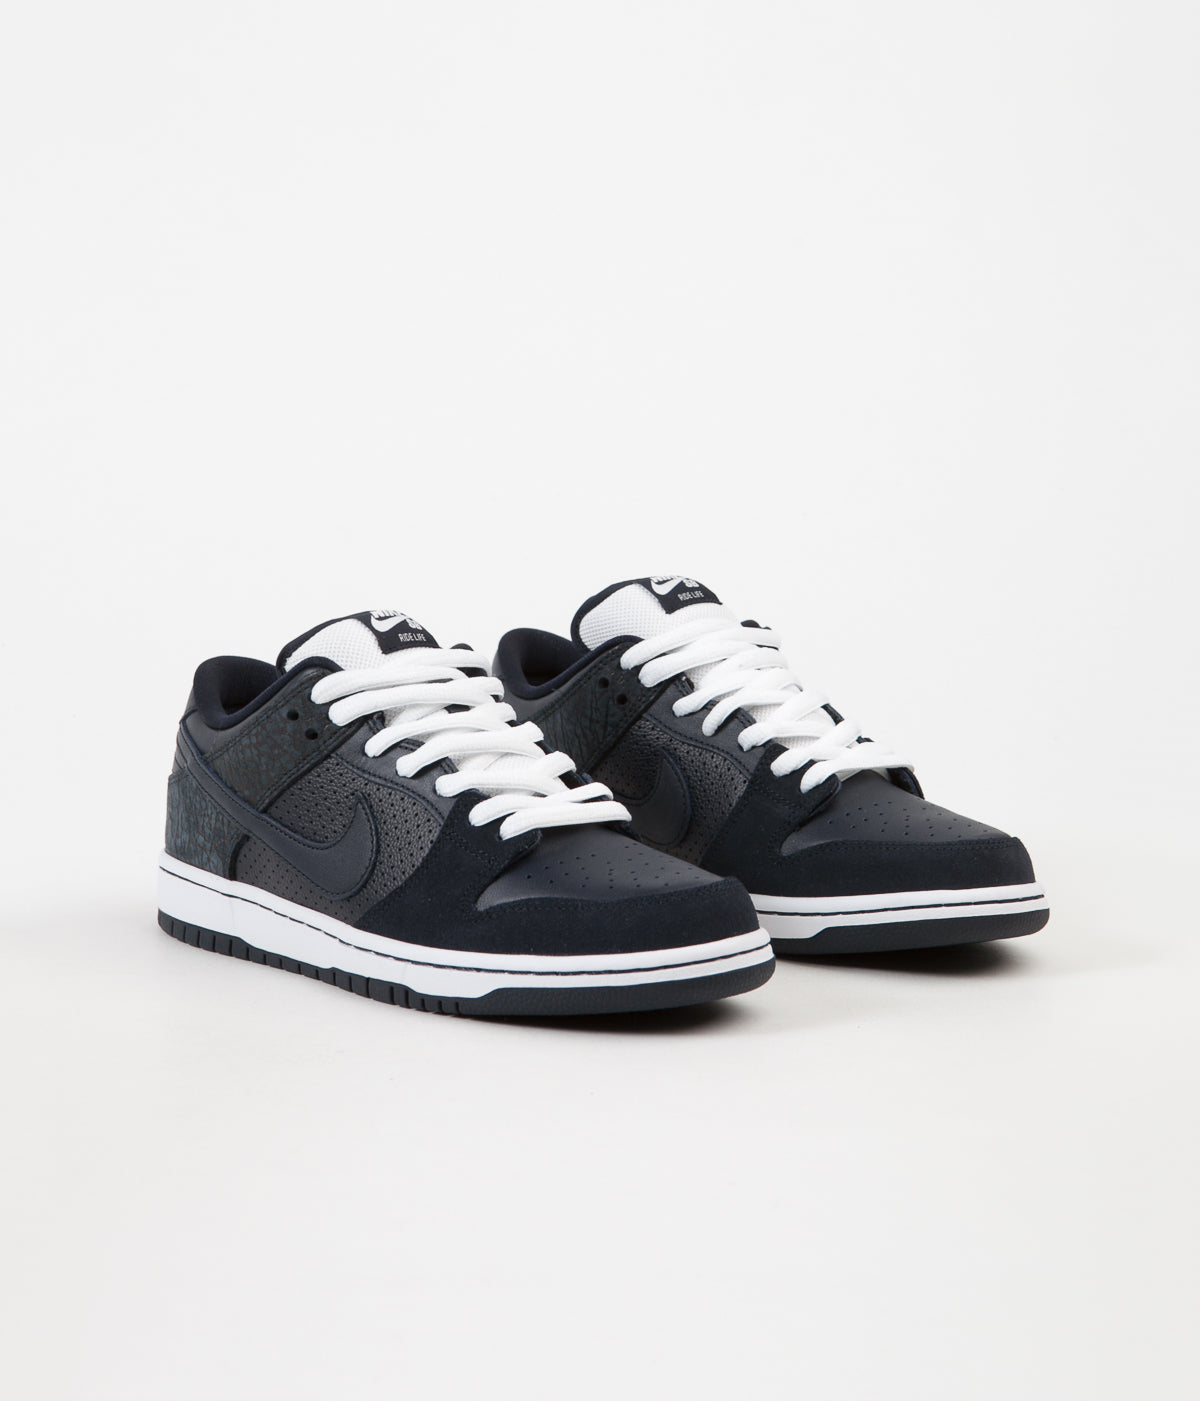 buy online 69ccb 57f35 Nike SB Dunk Low TRD Murasaki Shoes - Dark Obsidian / Dark ...